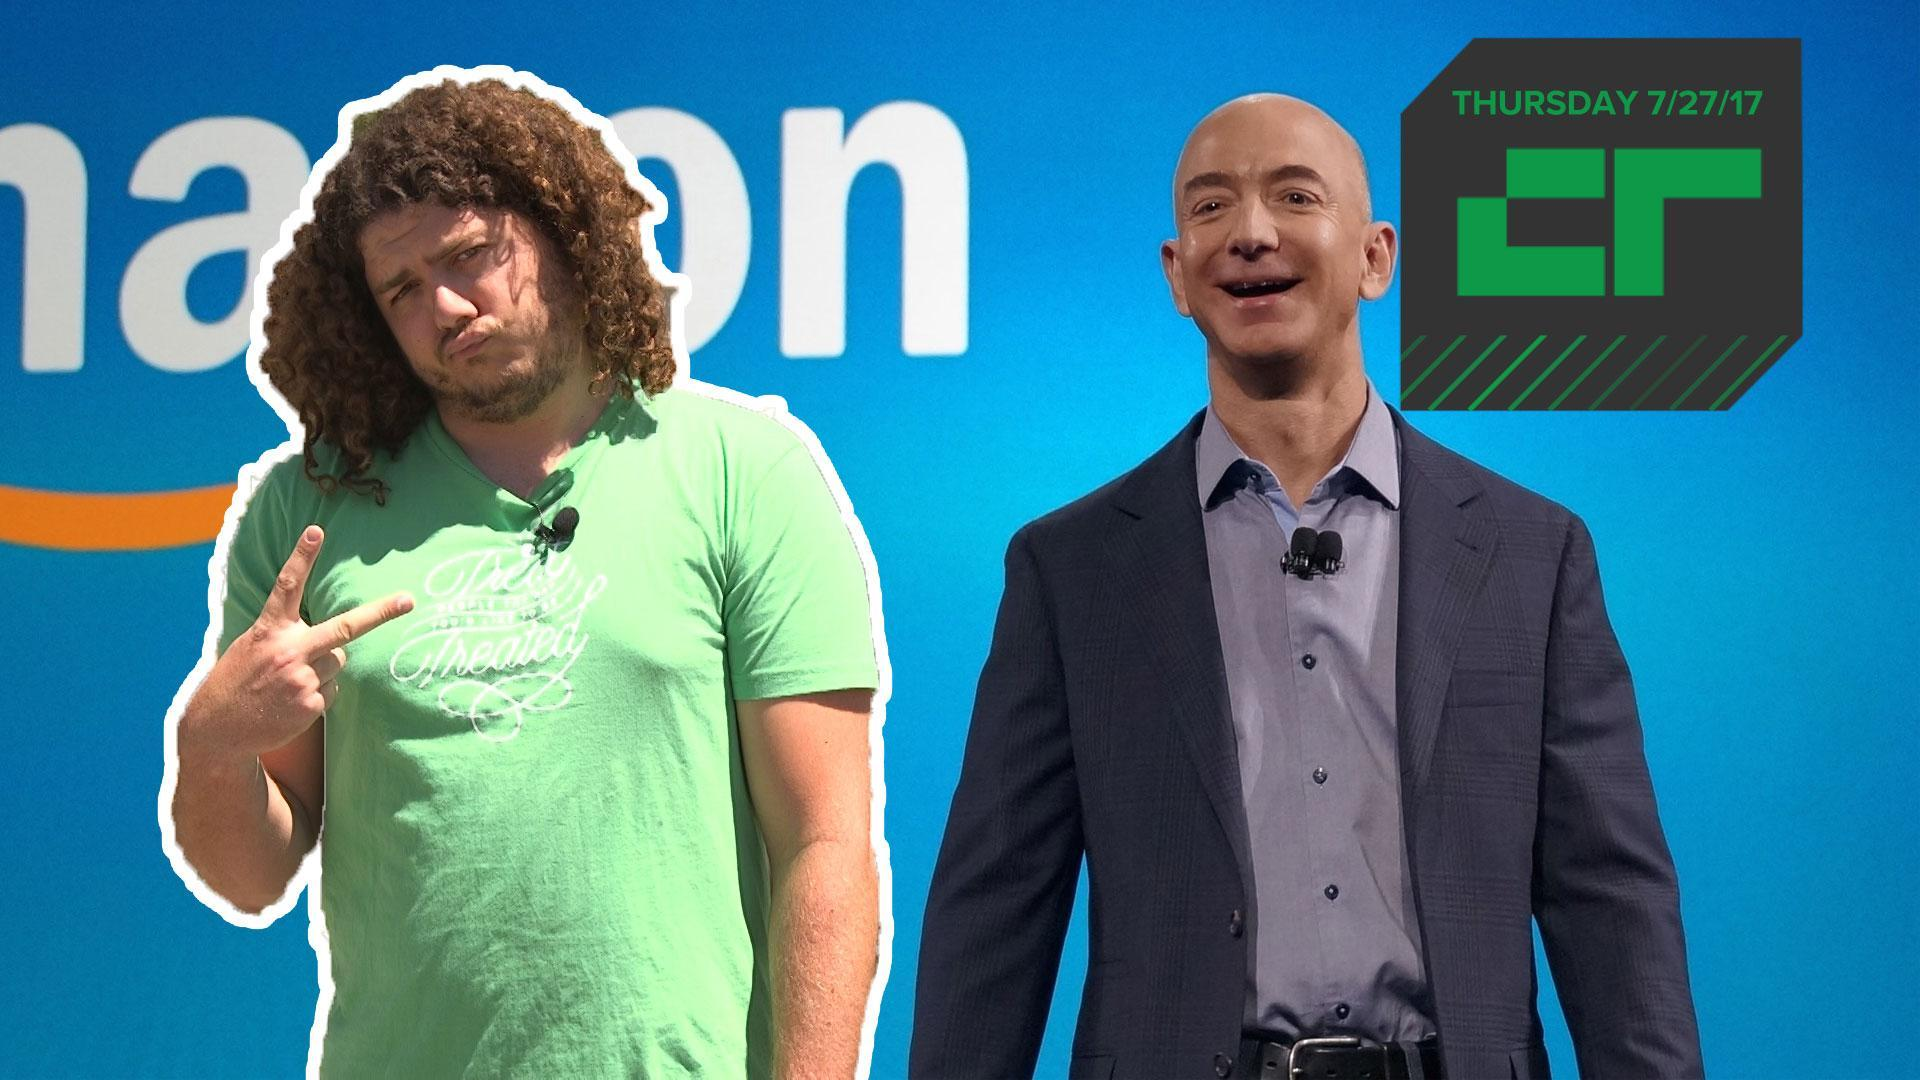 Jeff Bezos Becomes World's Richest Person | Crunch Report